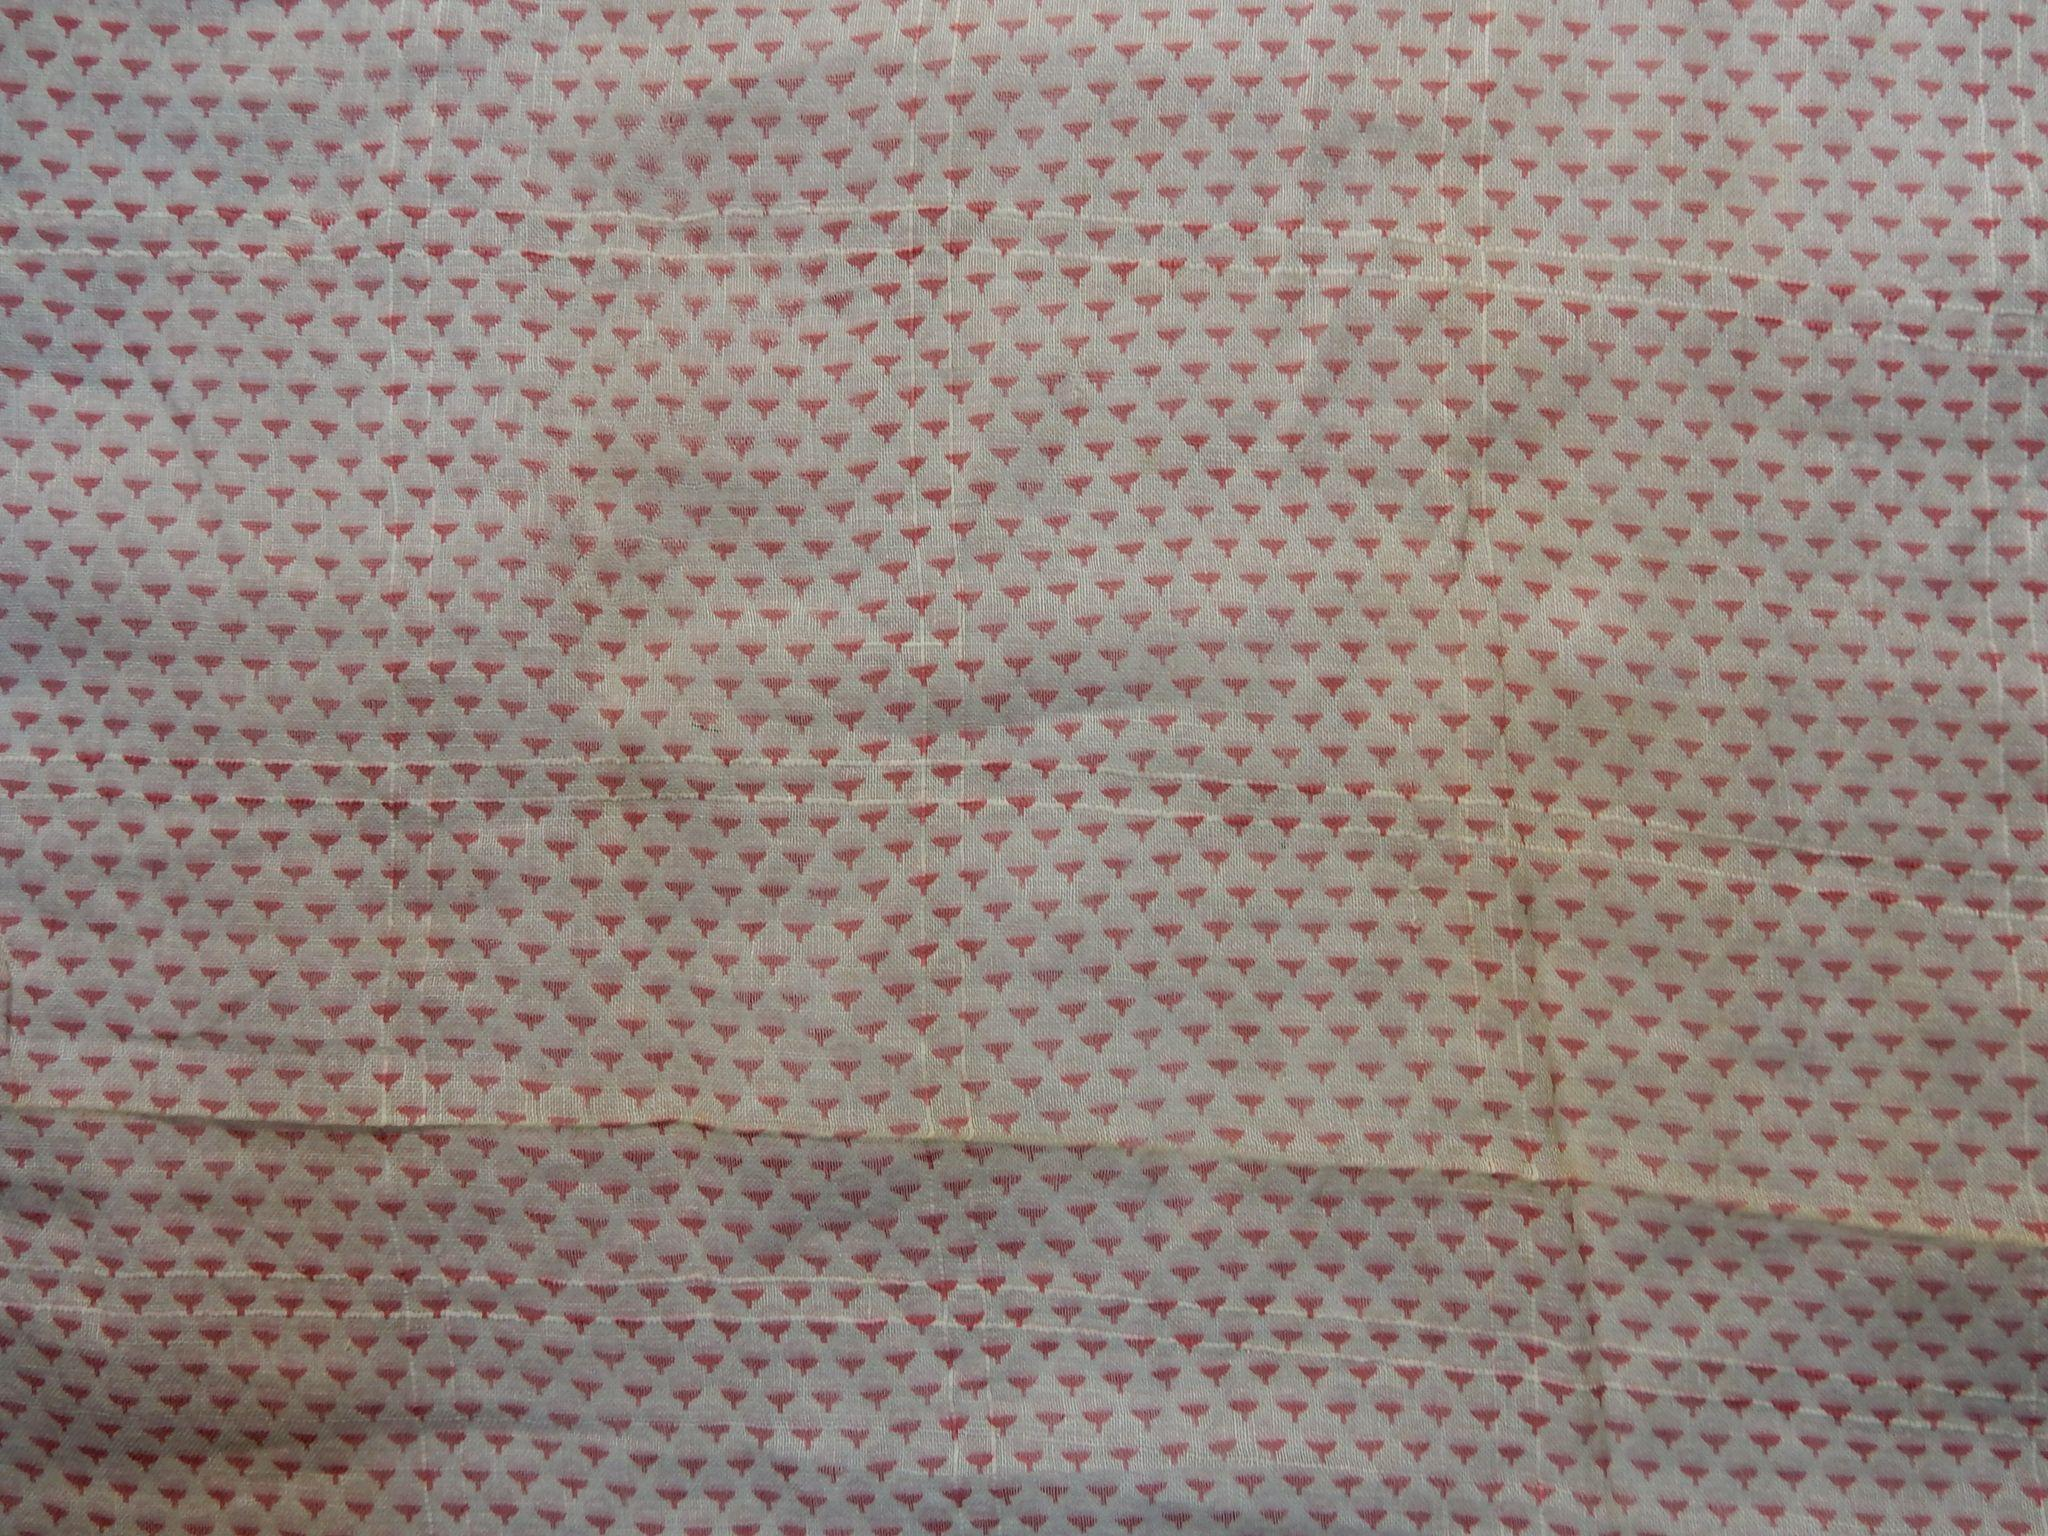 Antique civil war era cotton voile fabric tiny pattern for Voile fabric